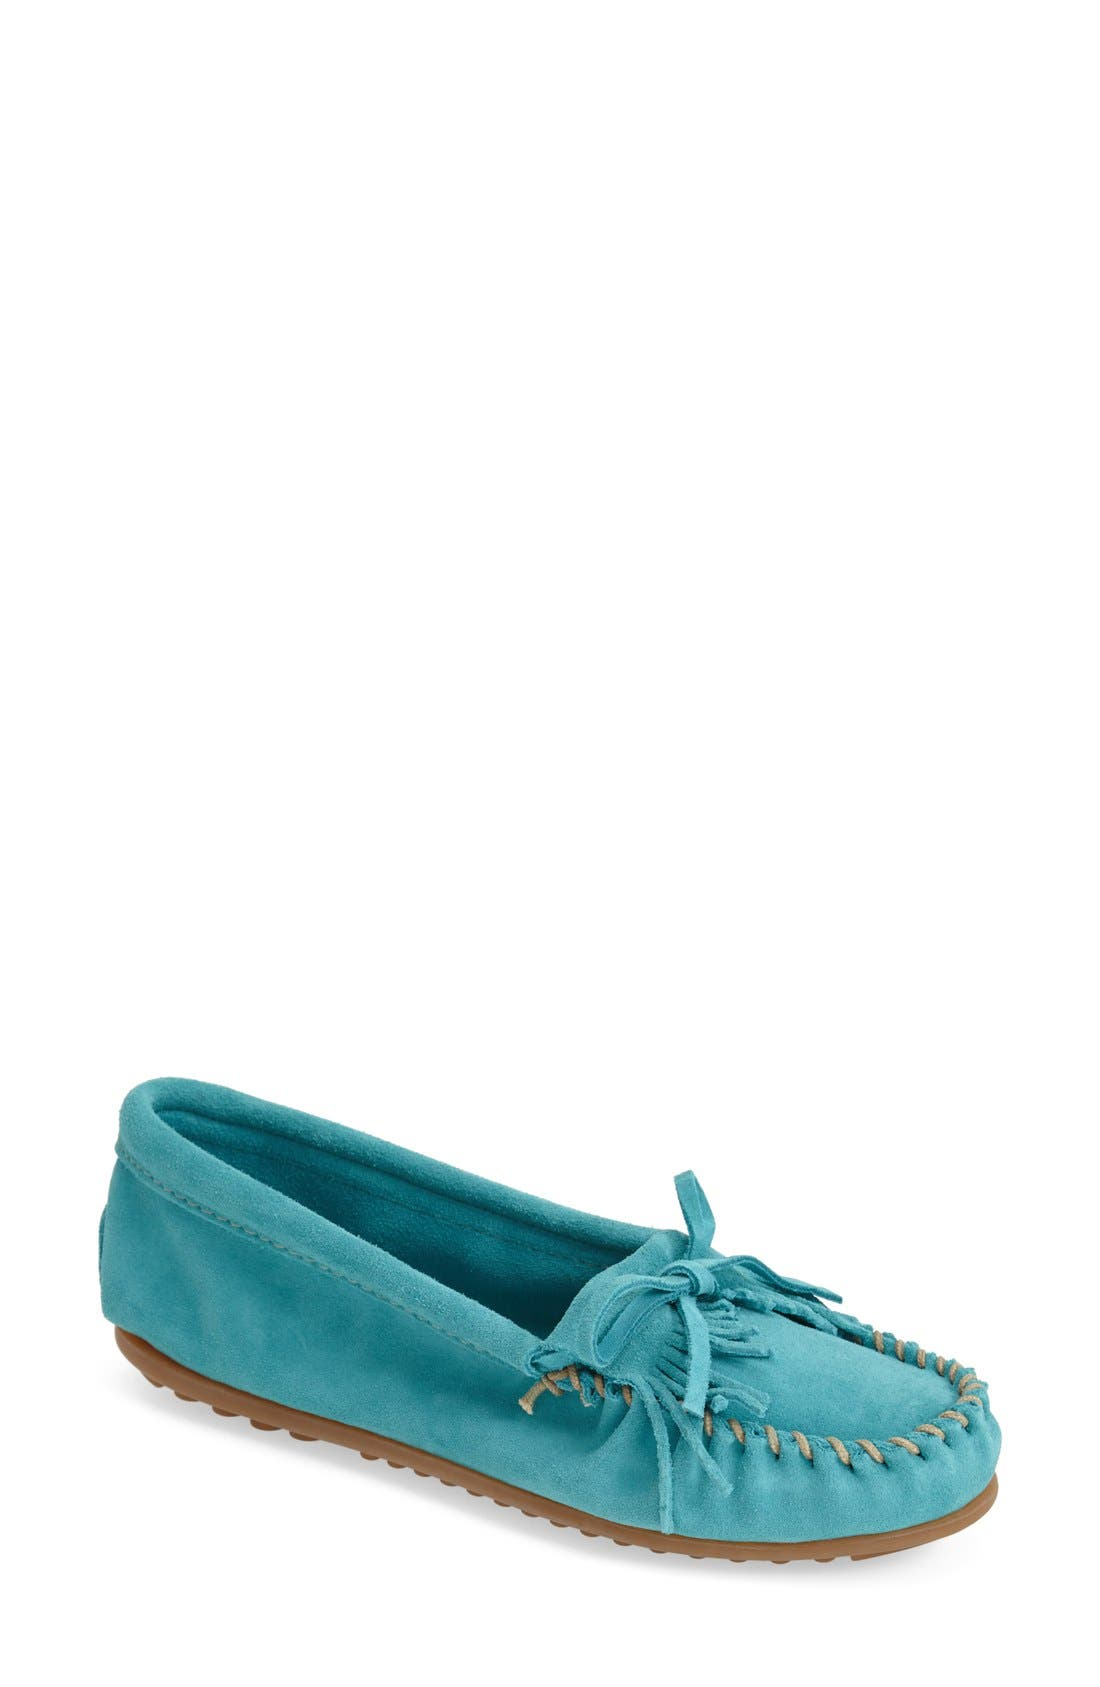 MINNETONKA, 'Kilty' Suede Moccasin, Main thumbnail 1, color, TURQUOISE